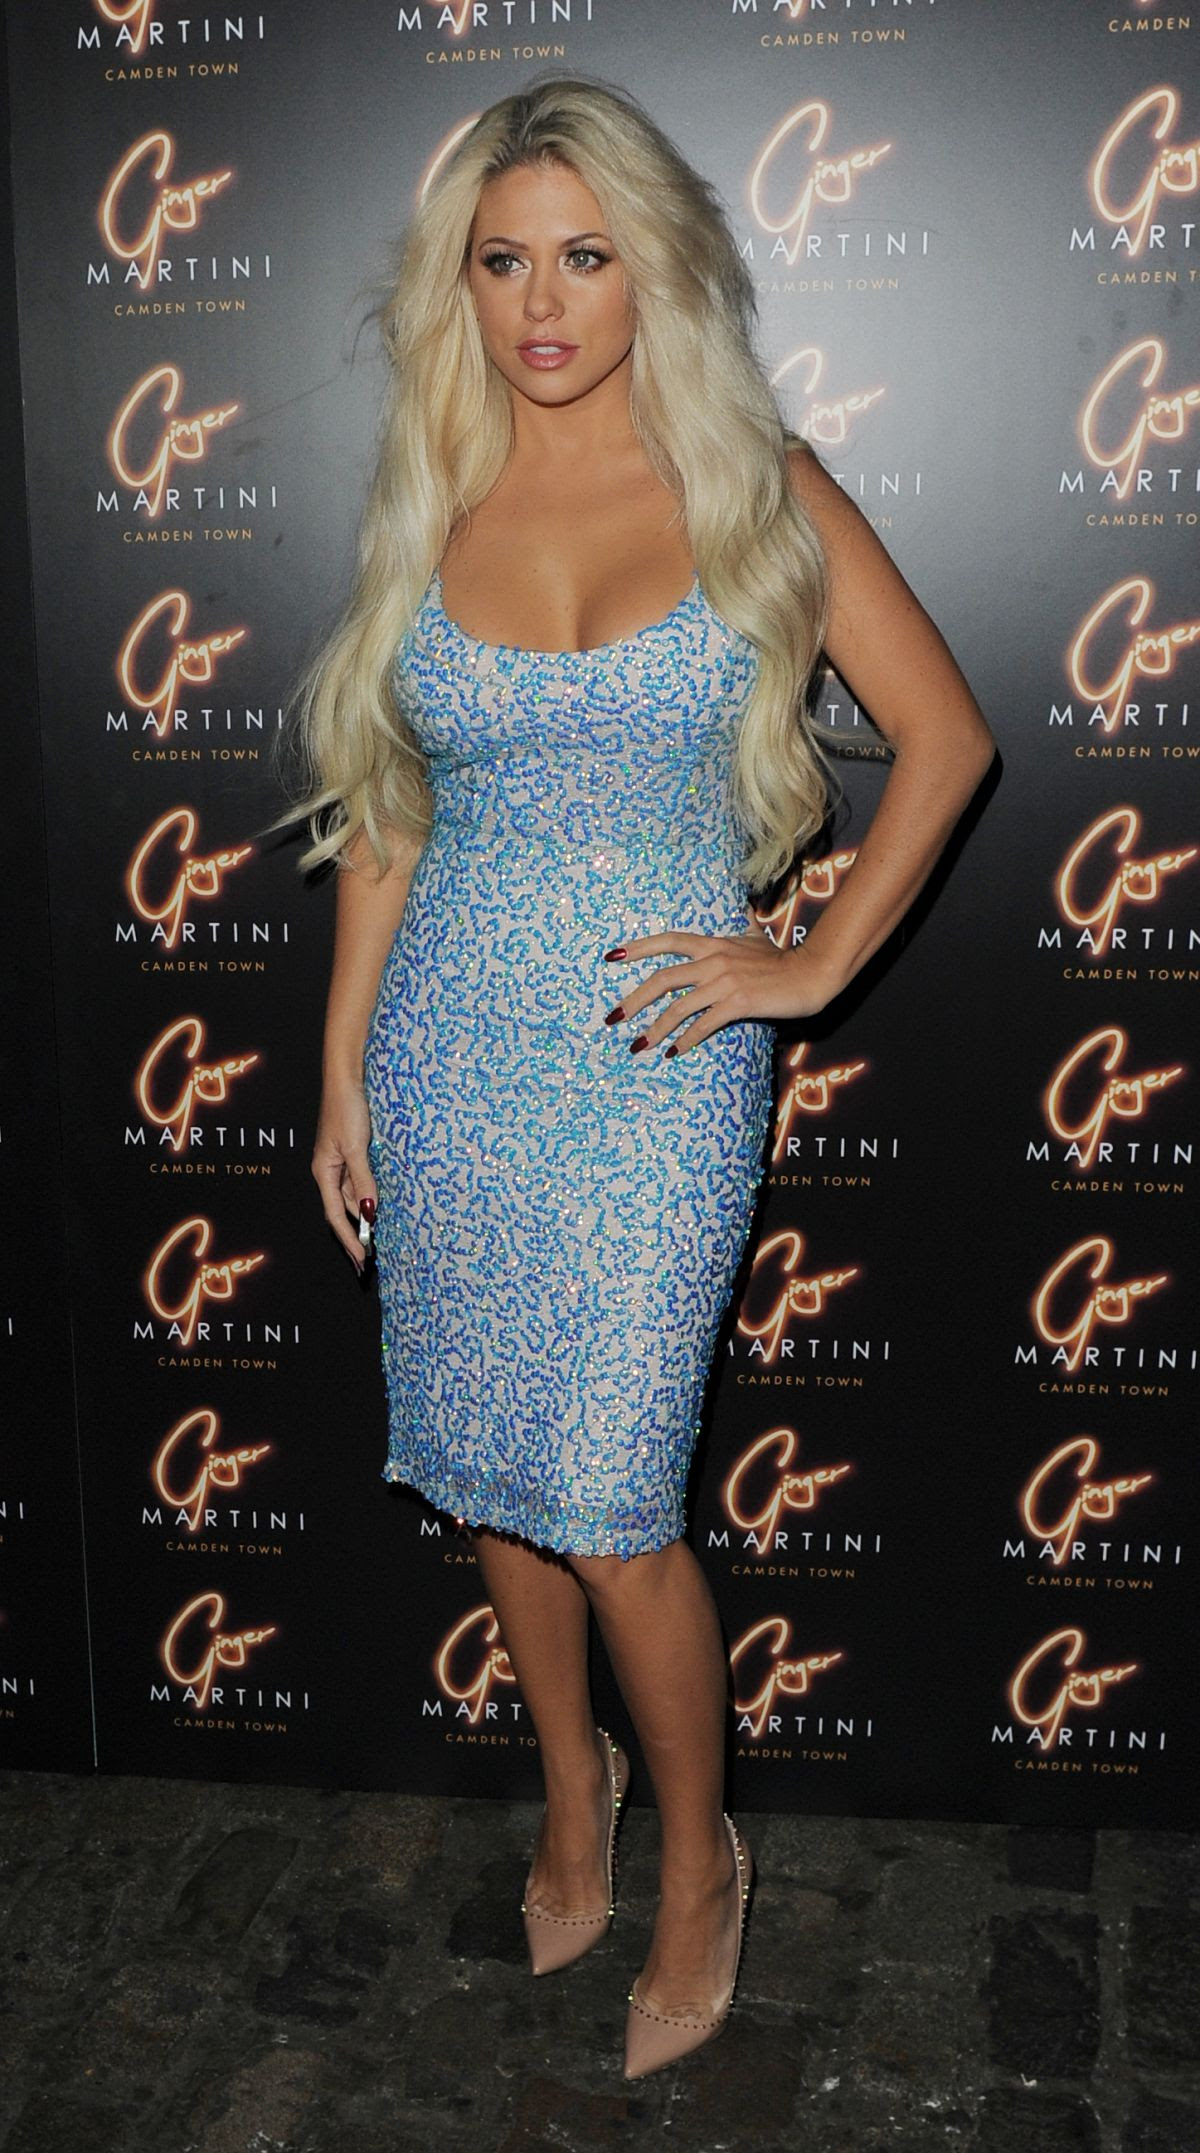 BIANCA GASCOIGNE at Ginger Martini VIP Launch Party in London 10/15/2015